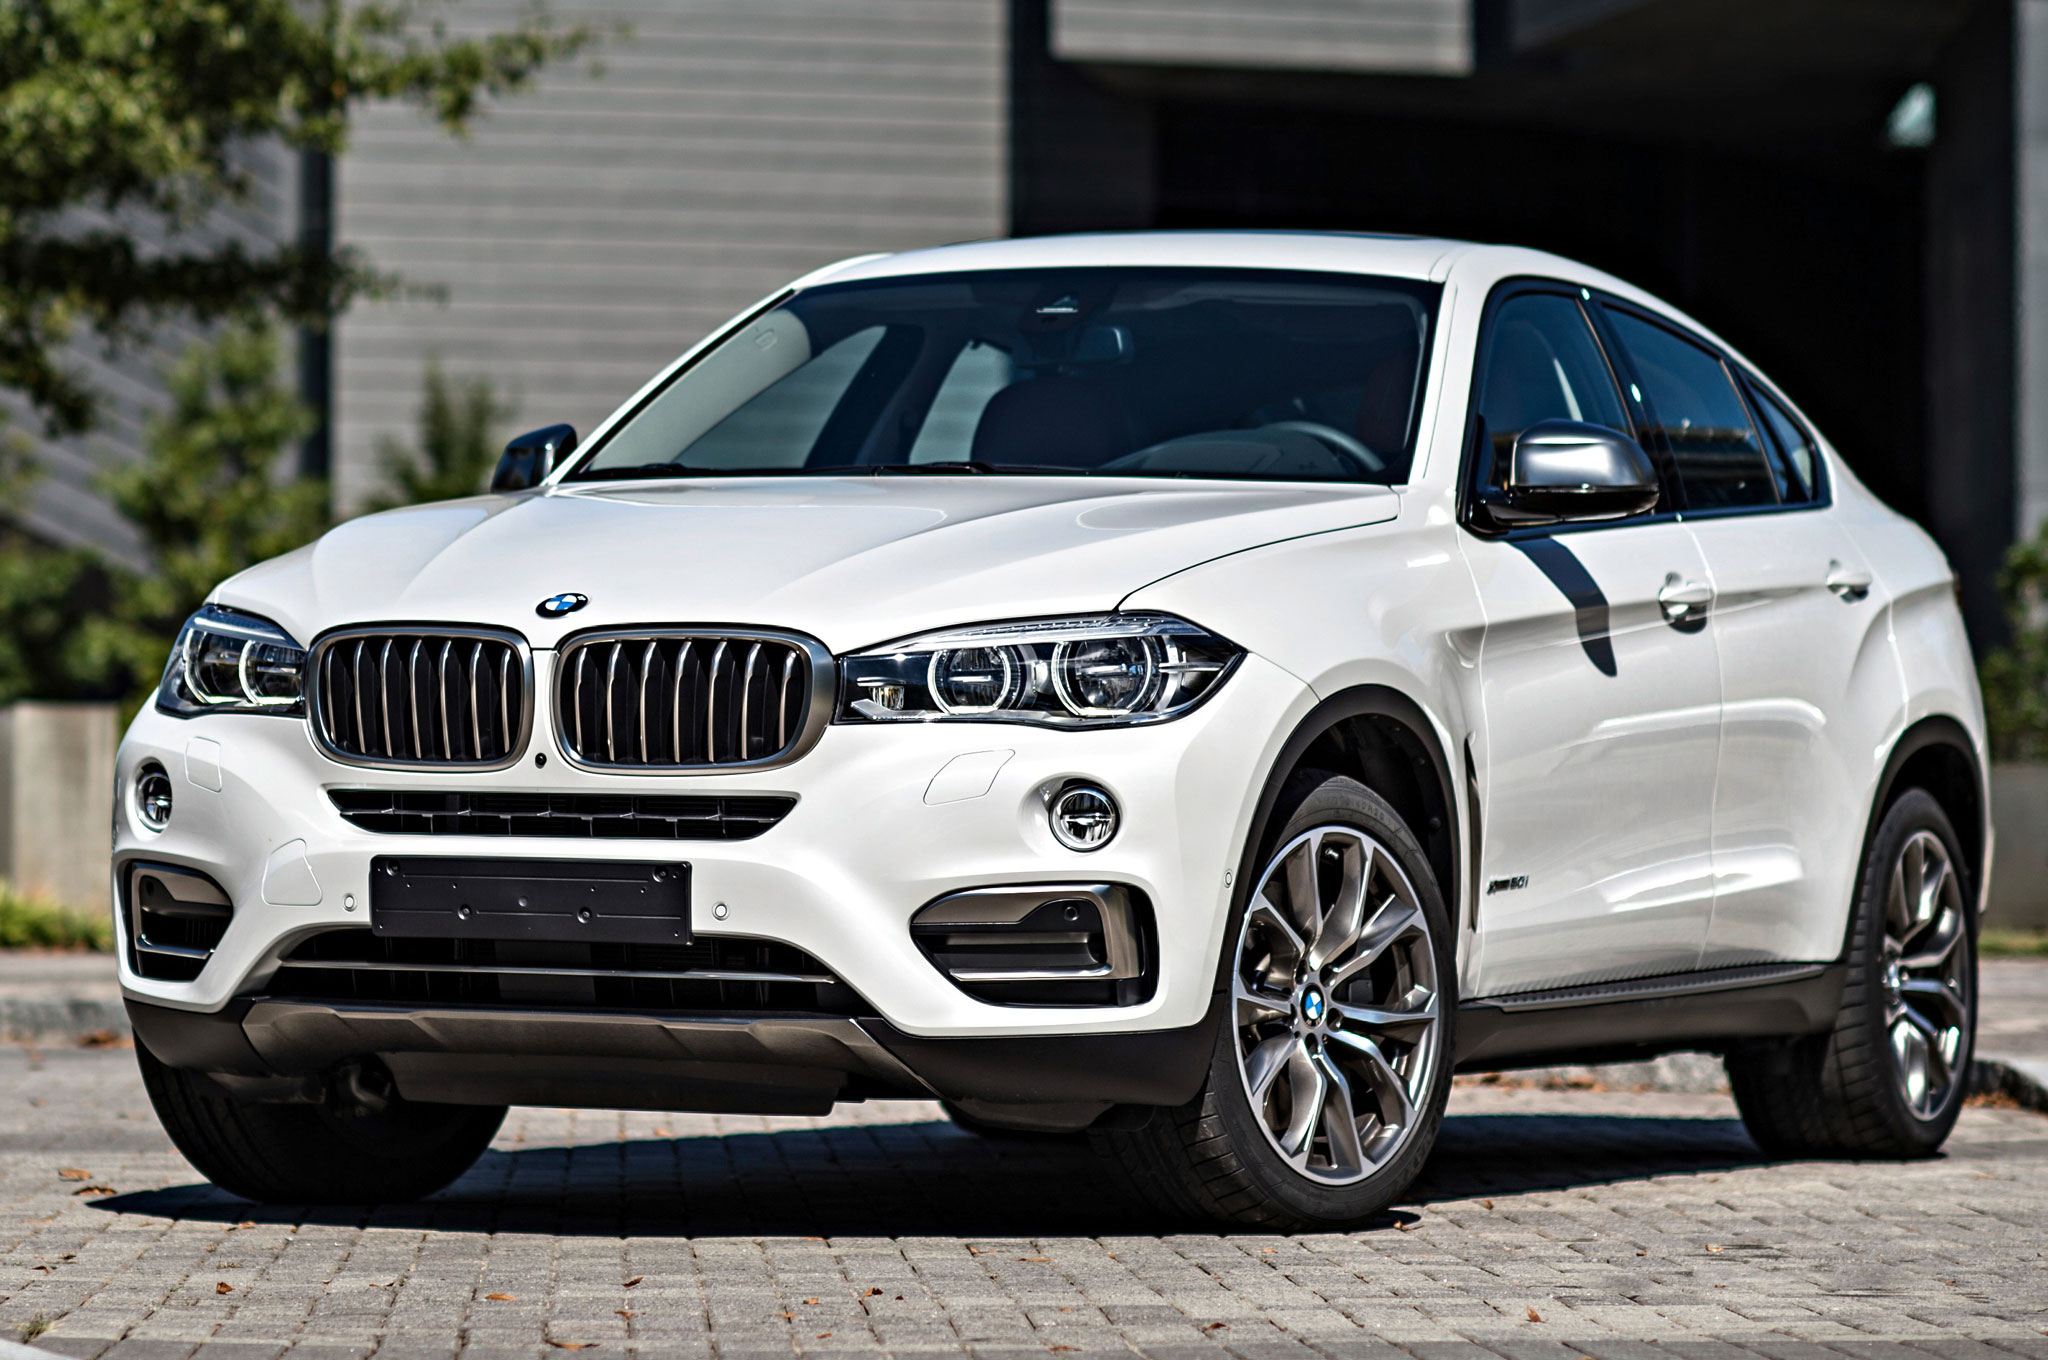 2015 bmw x6 m review. Black Bedroom Furniture Sets. Home Design Ideas